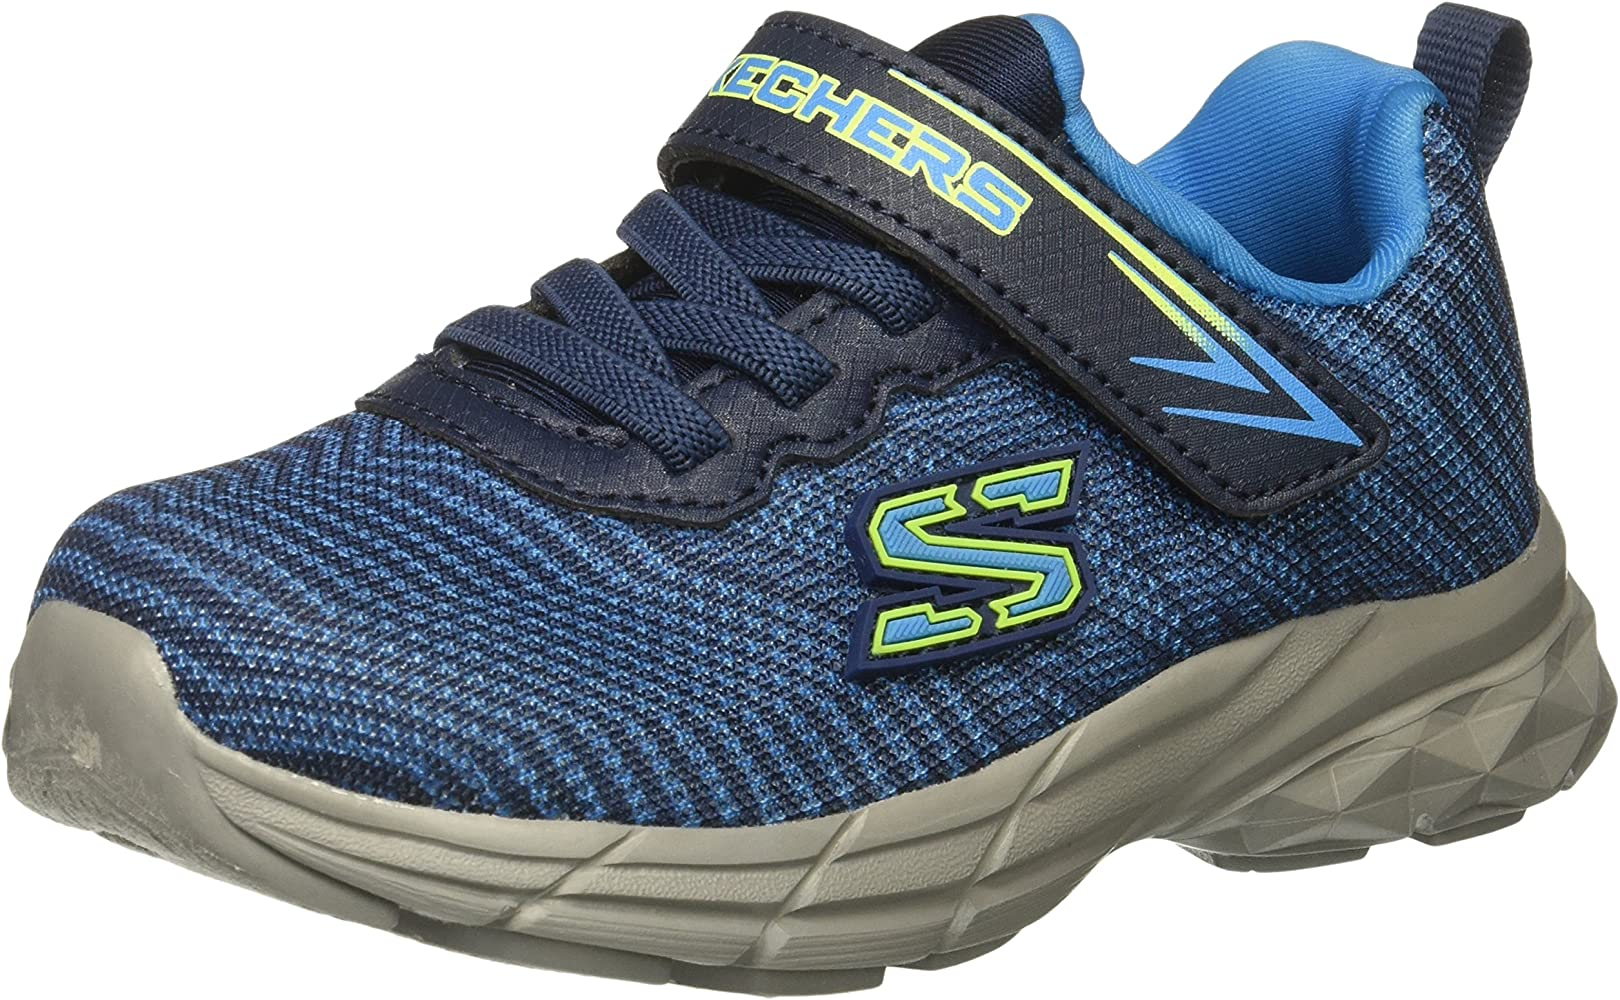 Skechers Kids Boys' Eclipsor Wide Sneaker, BlueNavy, 5 W US